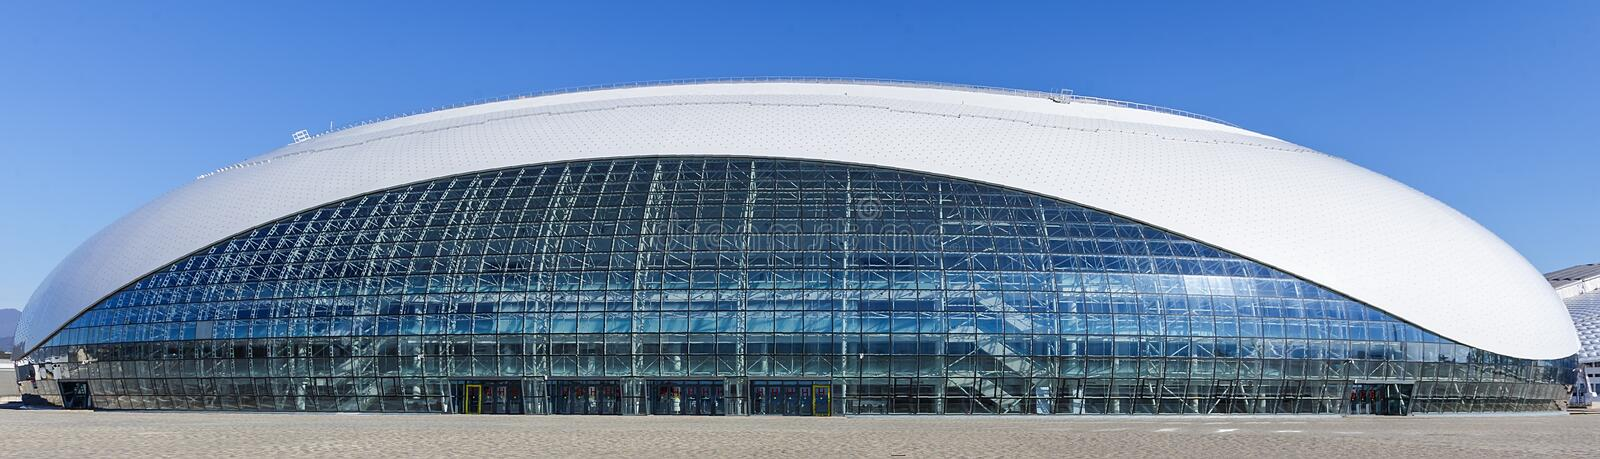 Sochi. Olympic Park. Facilities and attractions. royalty free stock photography